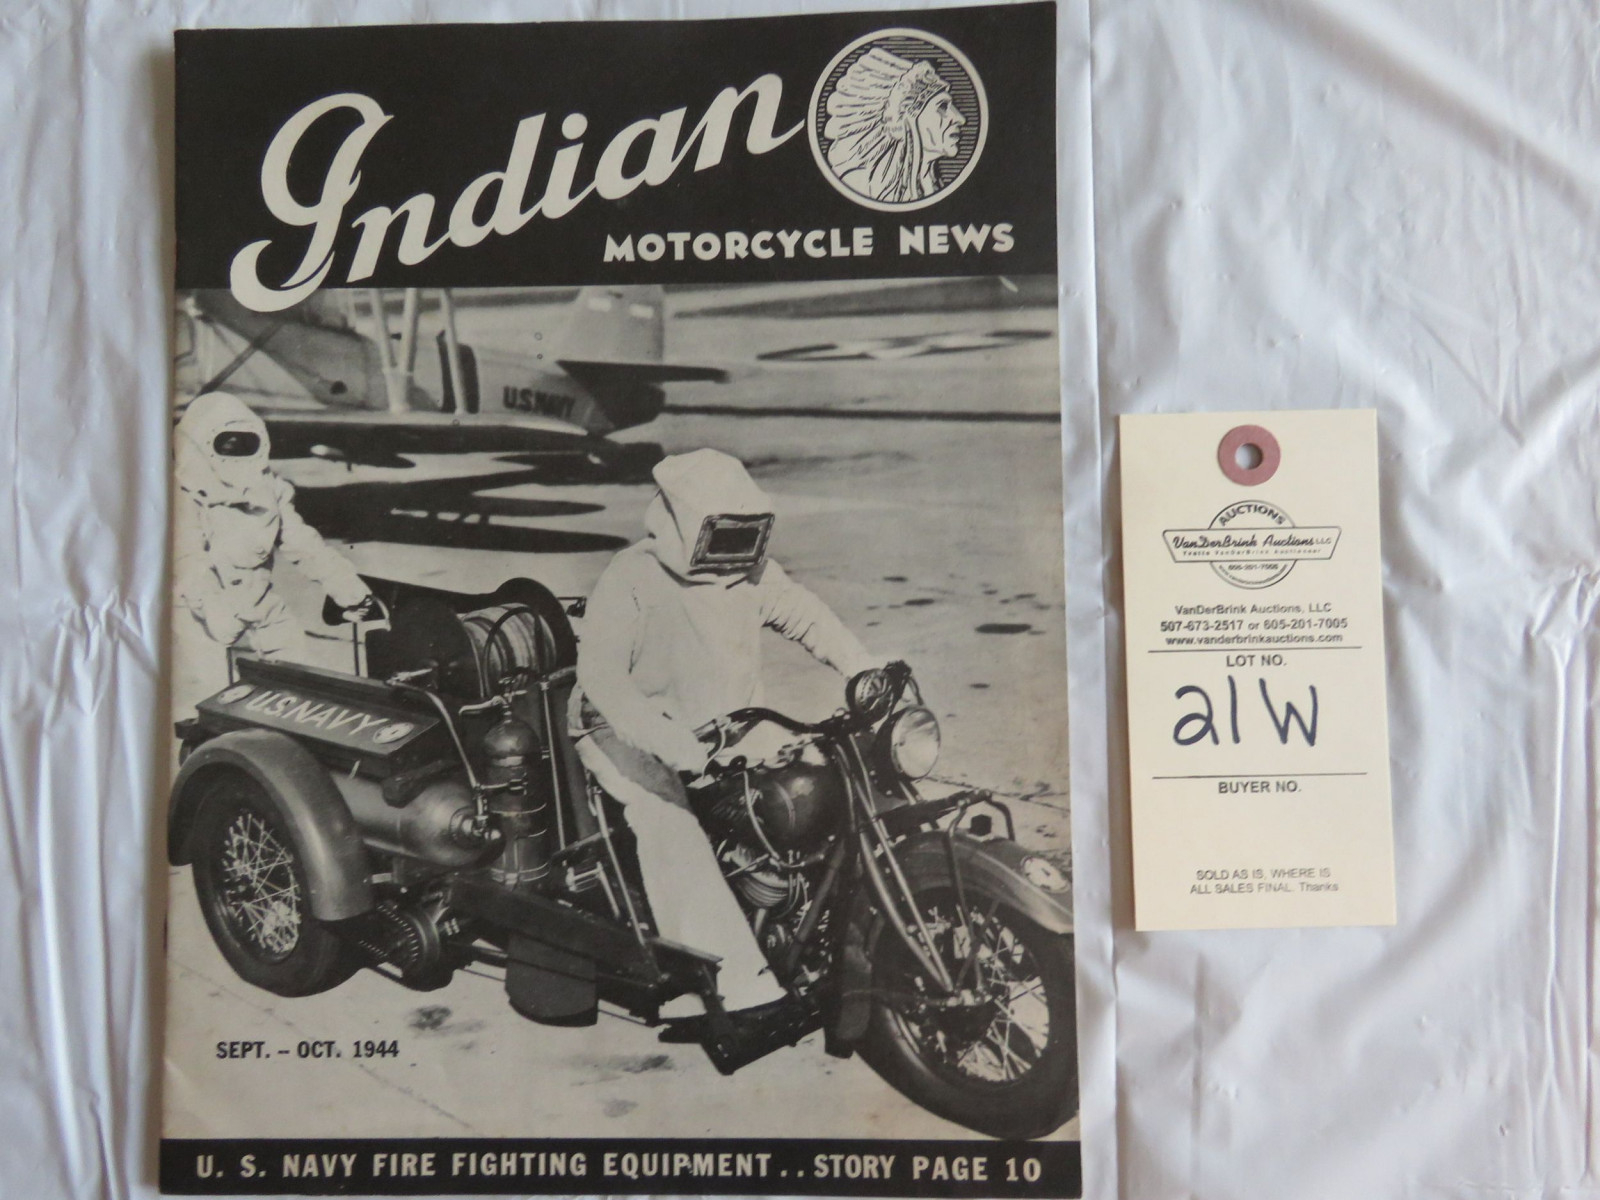 Sept.- Oct. 1944 Indian Motorcycle News - Image 1